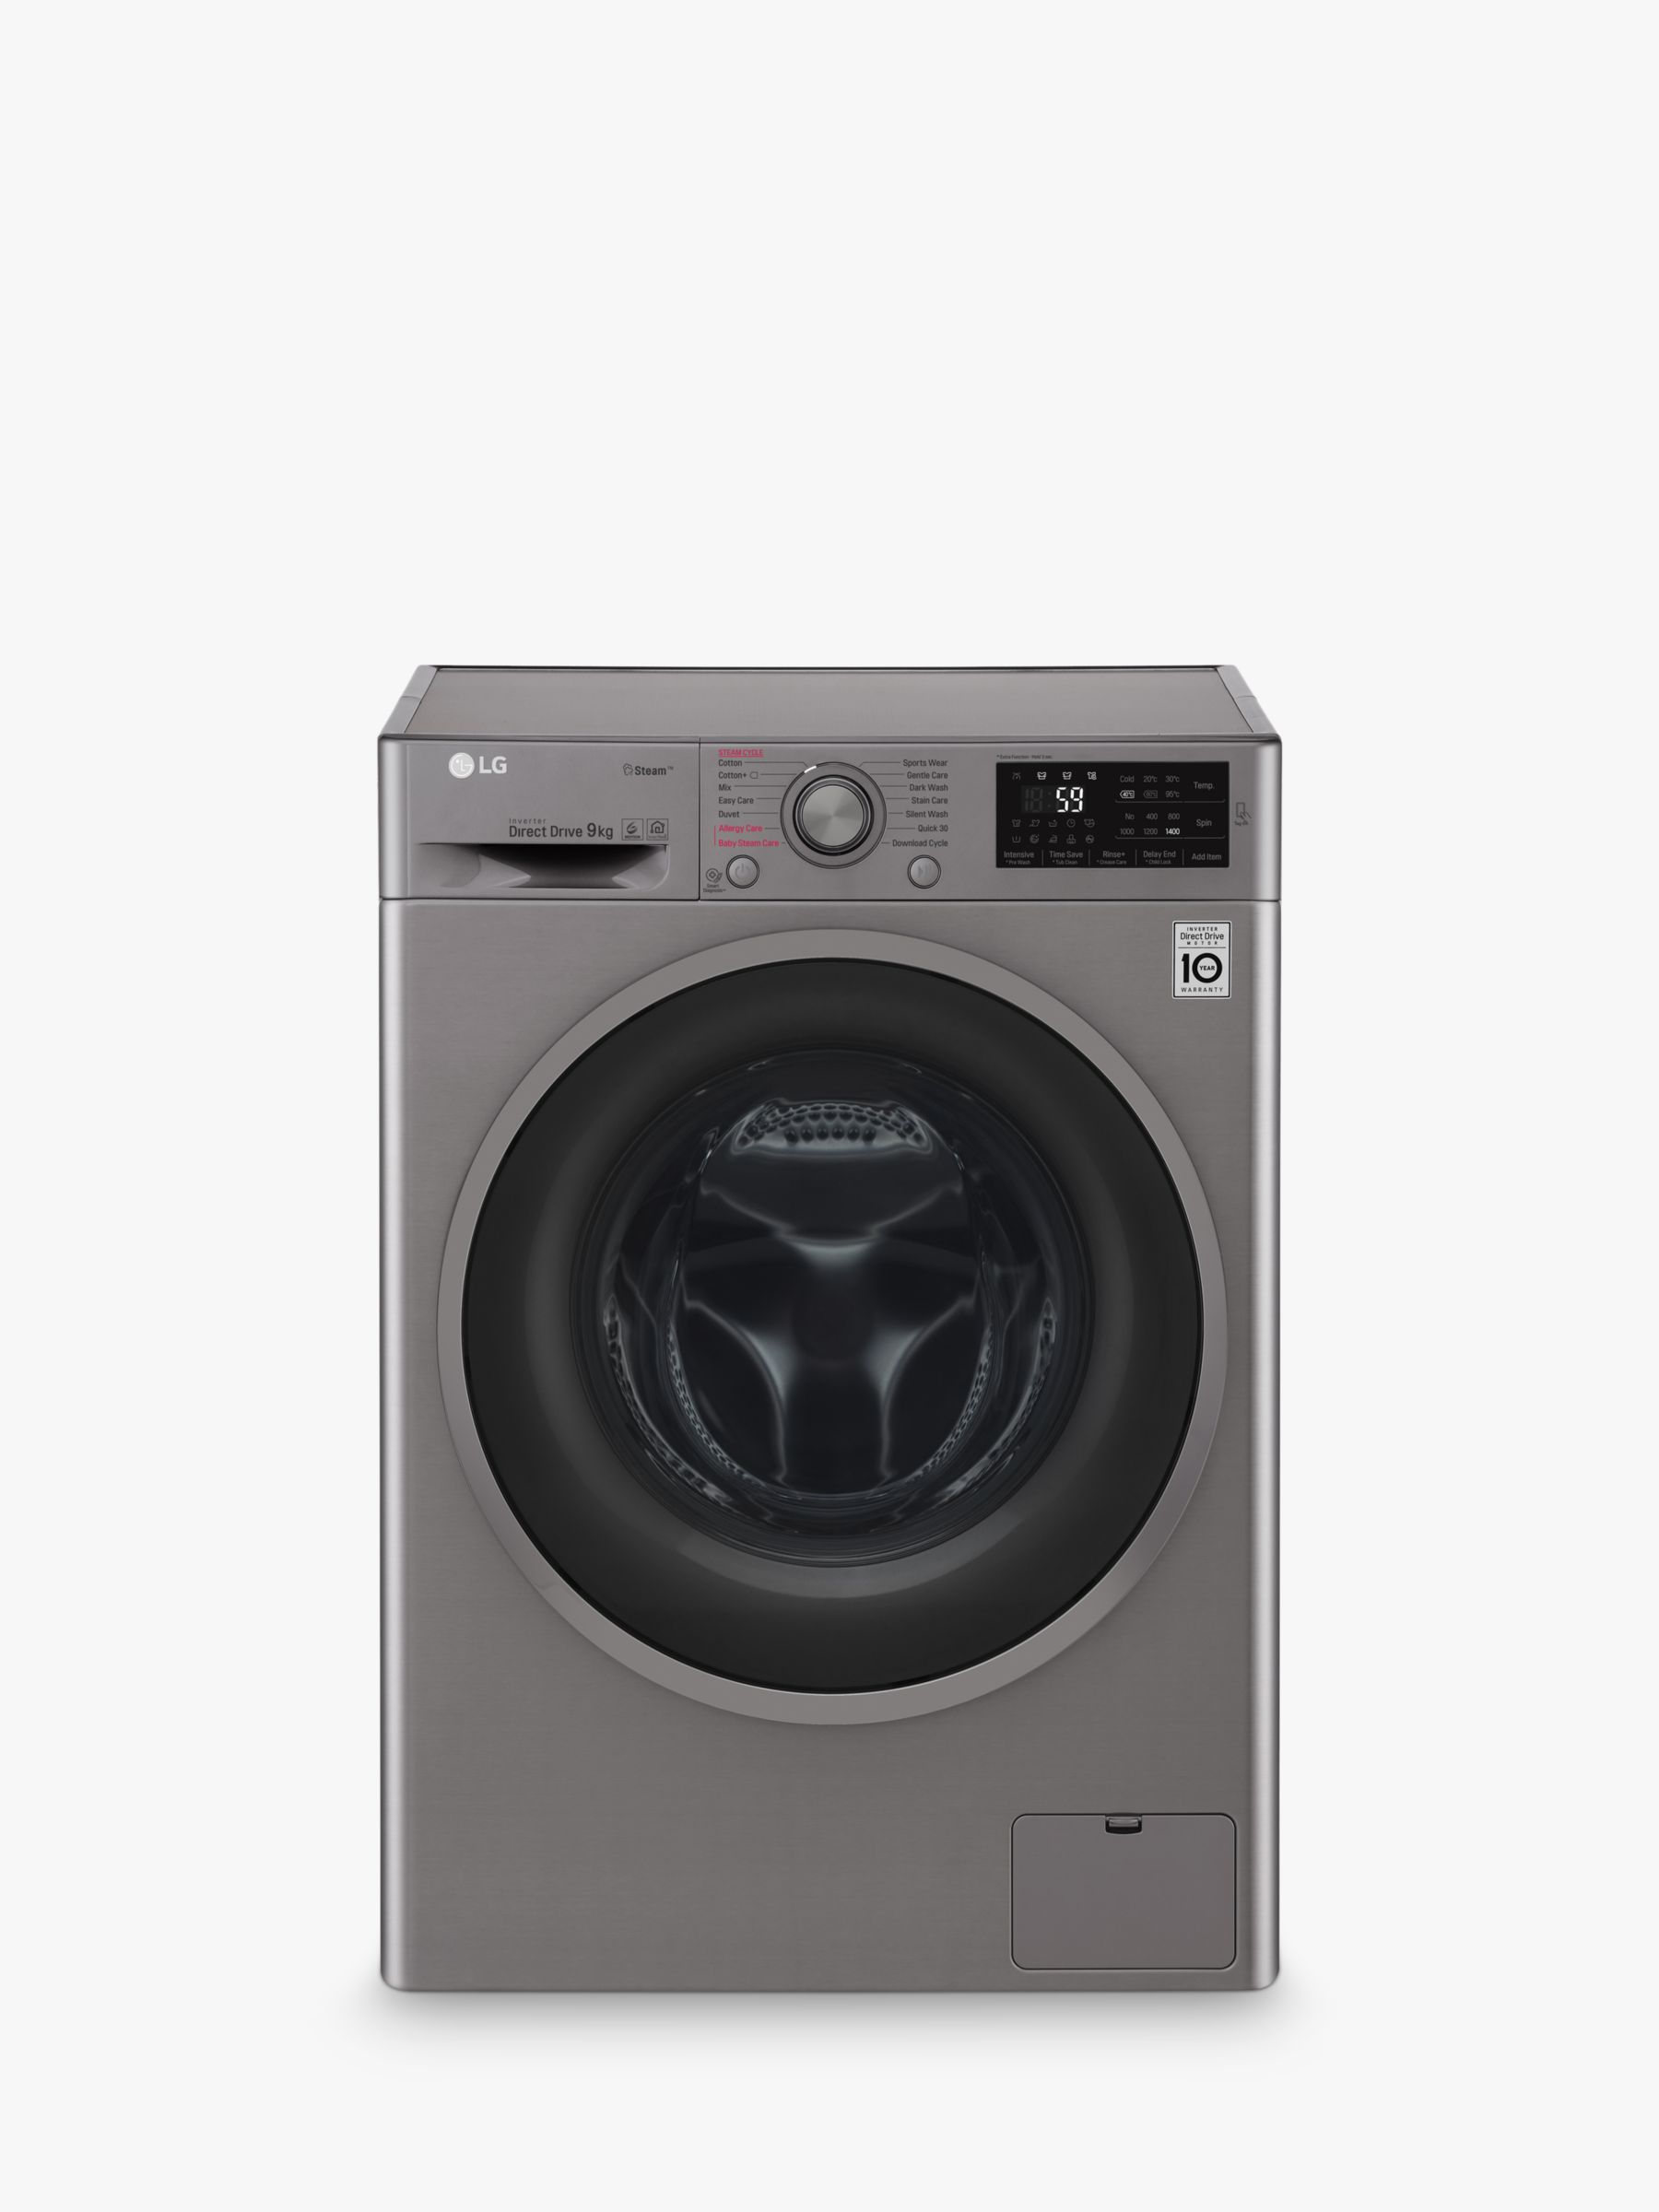 LG LG F4J609SS Freestanding Washing Machine, 9kg Load, A+++ Energy Rating, 1400rpm Spin, Graphite